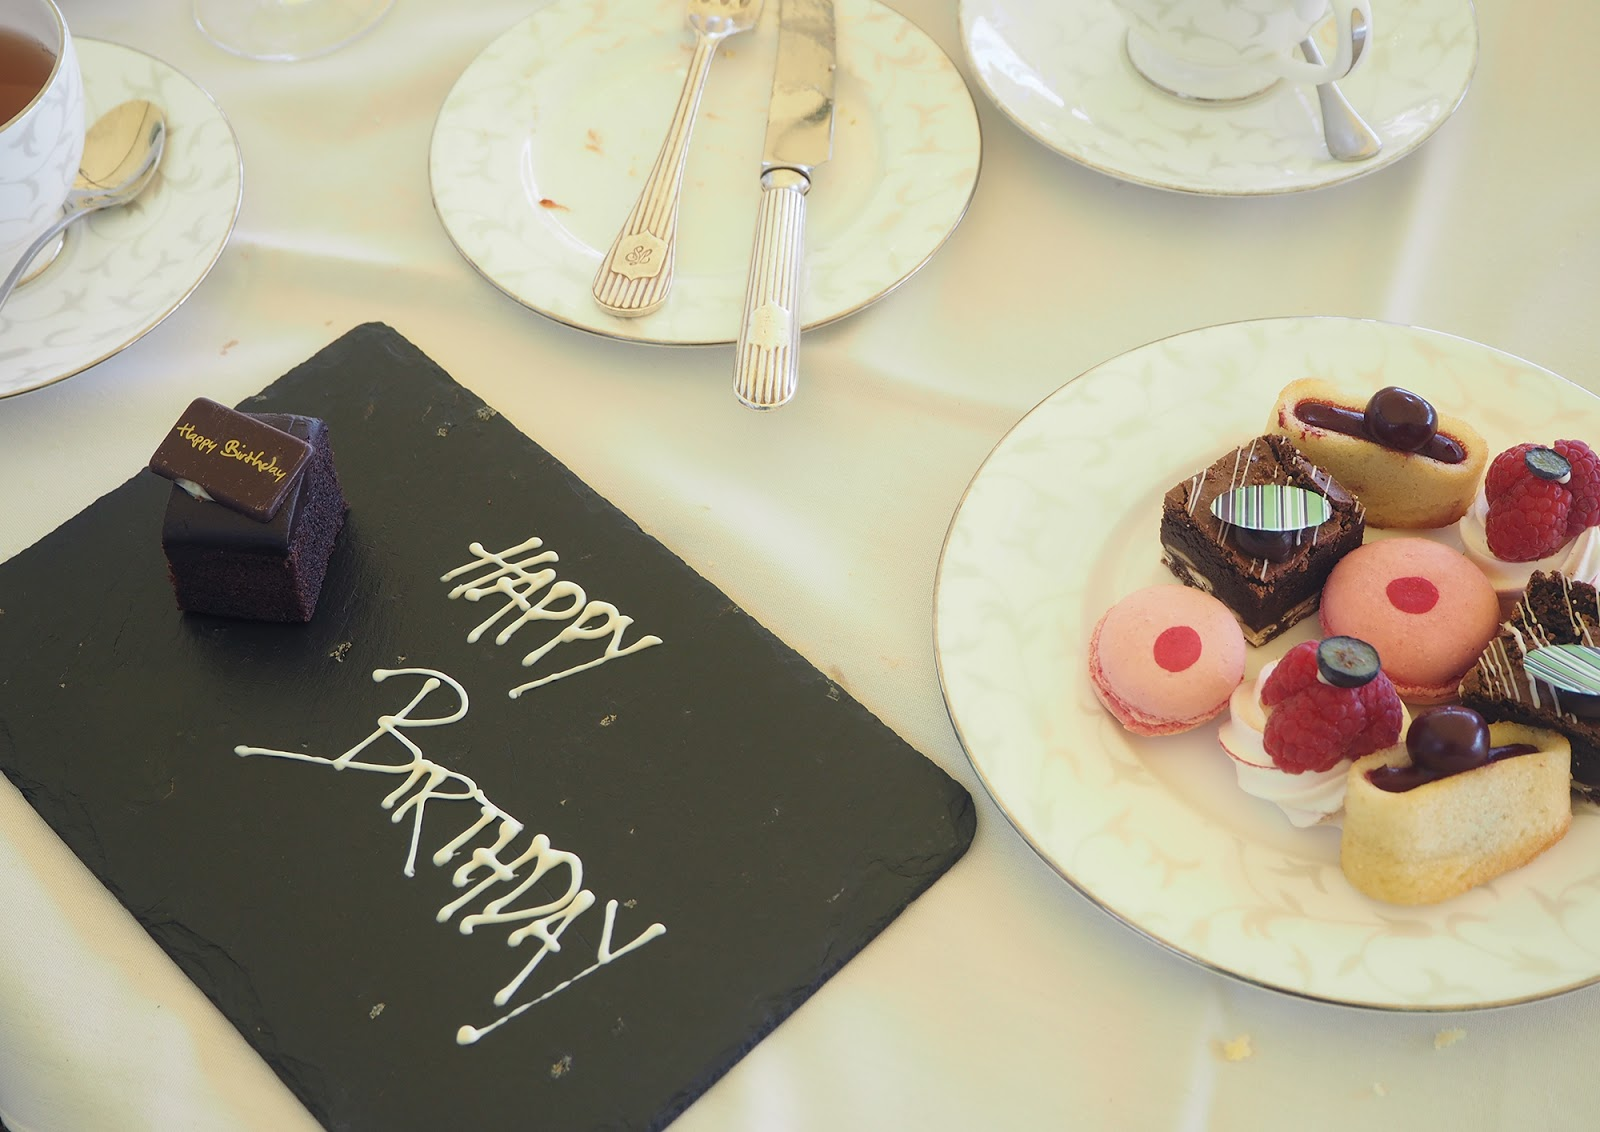 Afternoon tea review at South Lodge in Horsham - birthday cake